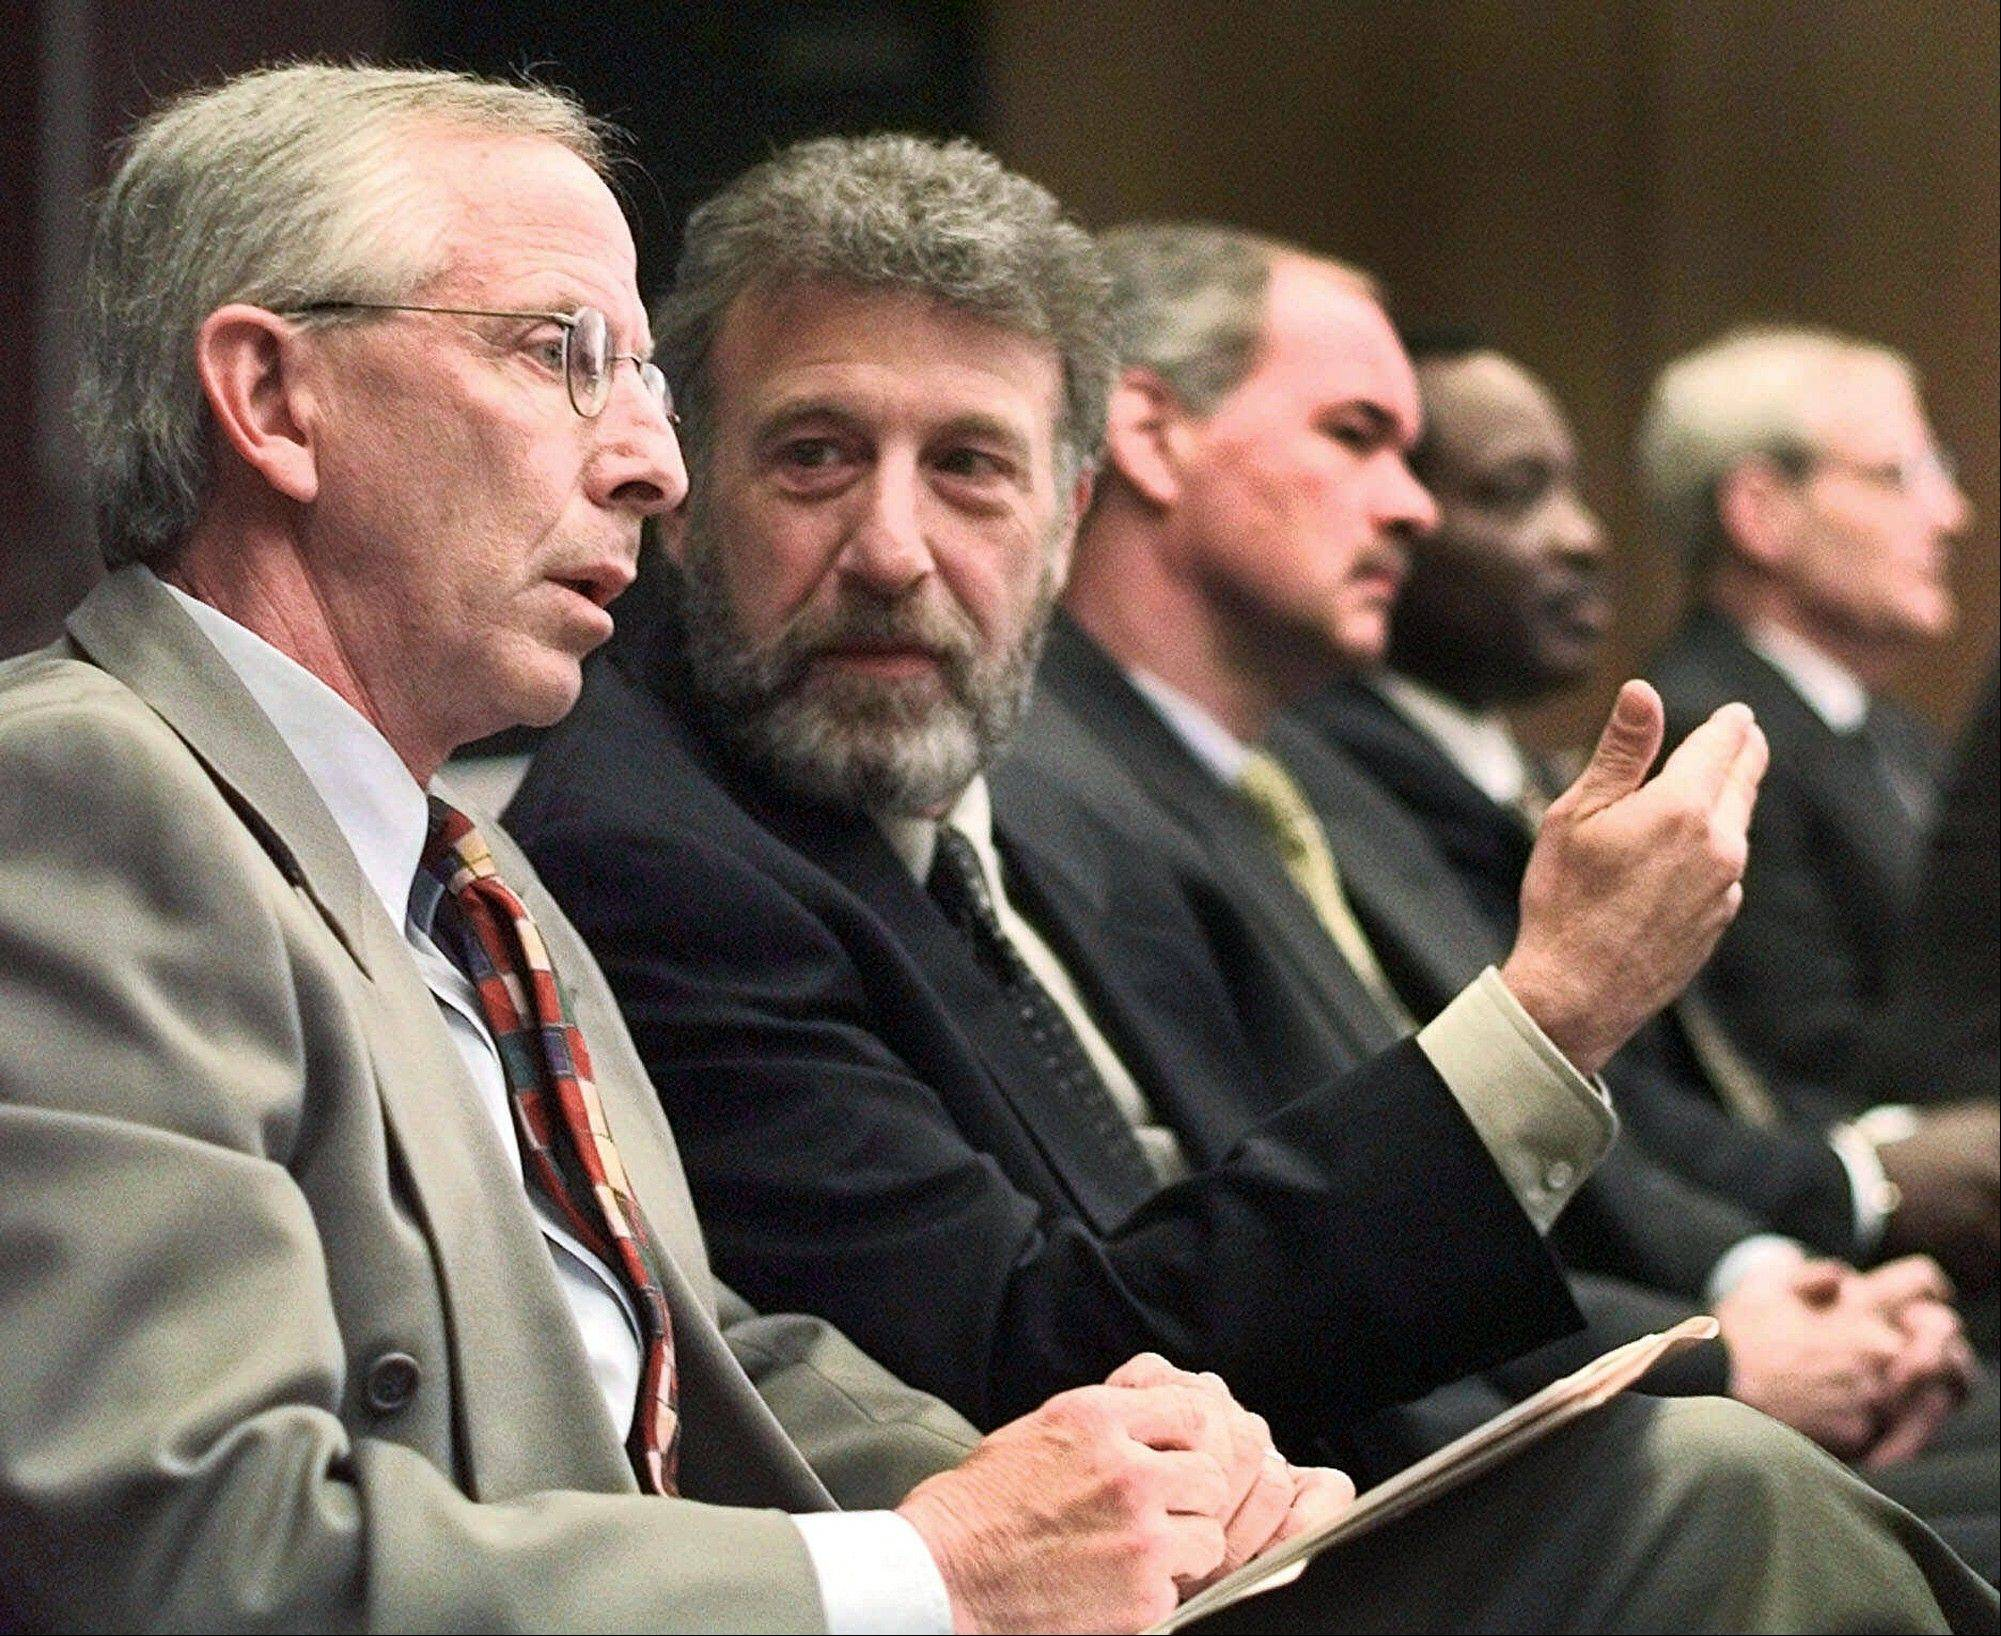 Men�s Wearhouse has offered some details on why it parted ways with its founder, George Zimmer, second from left, saying he seemed to have difficulty �accepting the fact that Men�s Wearhouse is a public company with an independent board of directors and that he has not been the chief executive officer for two years.�